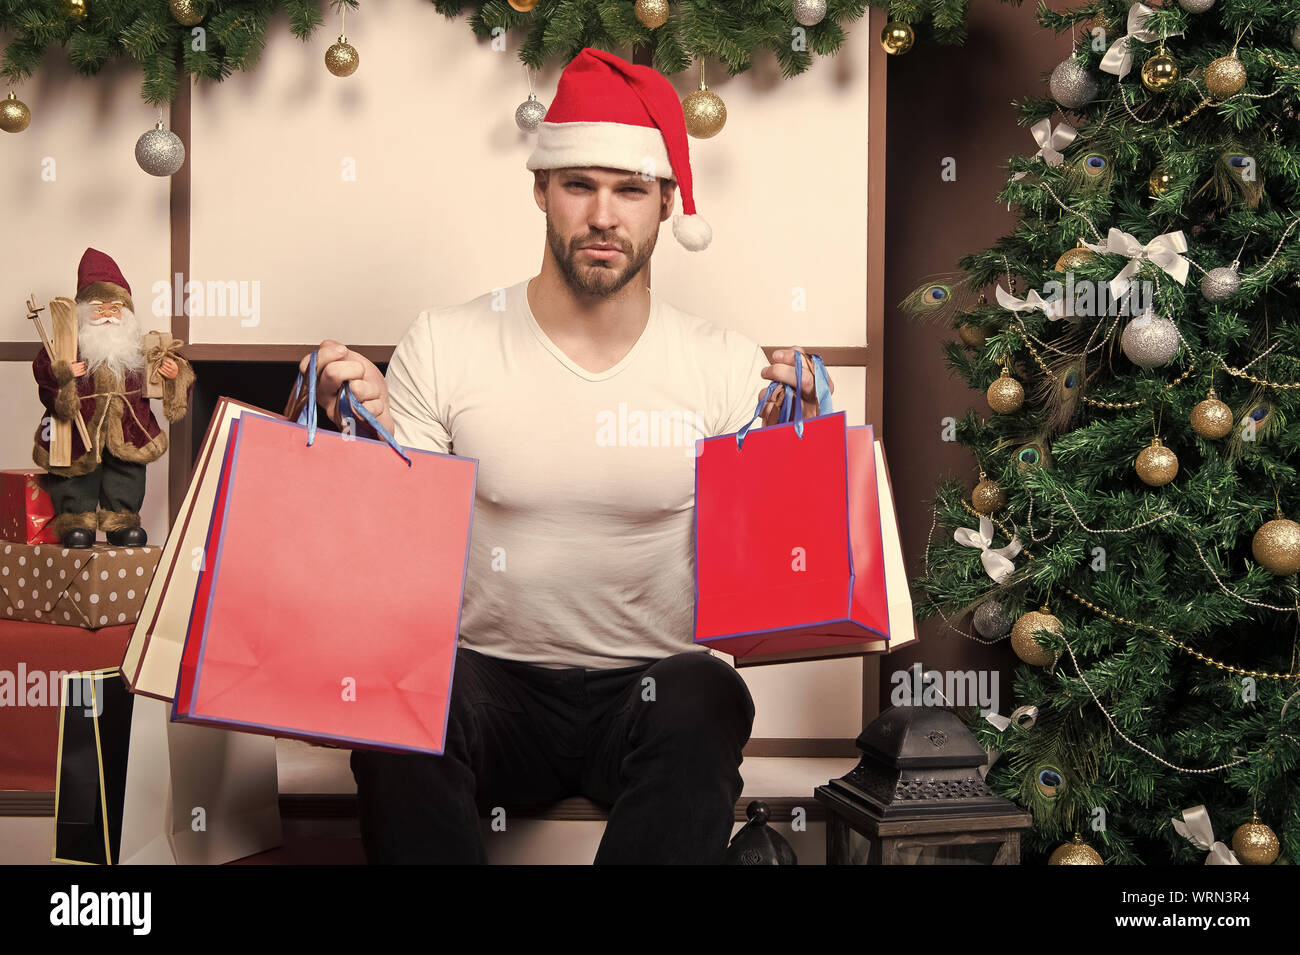 Online Christmas Shopping New Year Scene With Tree And Gifts Delivery Christmas Gifts Happy Santa Man The Morning Before Xmas Man In Santa Hat Hold Christmas Present Merry Christmas Best Offer Stock